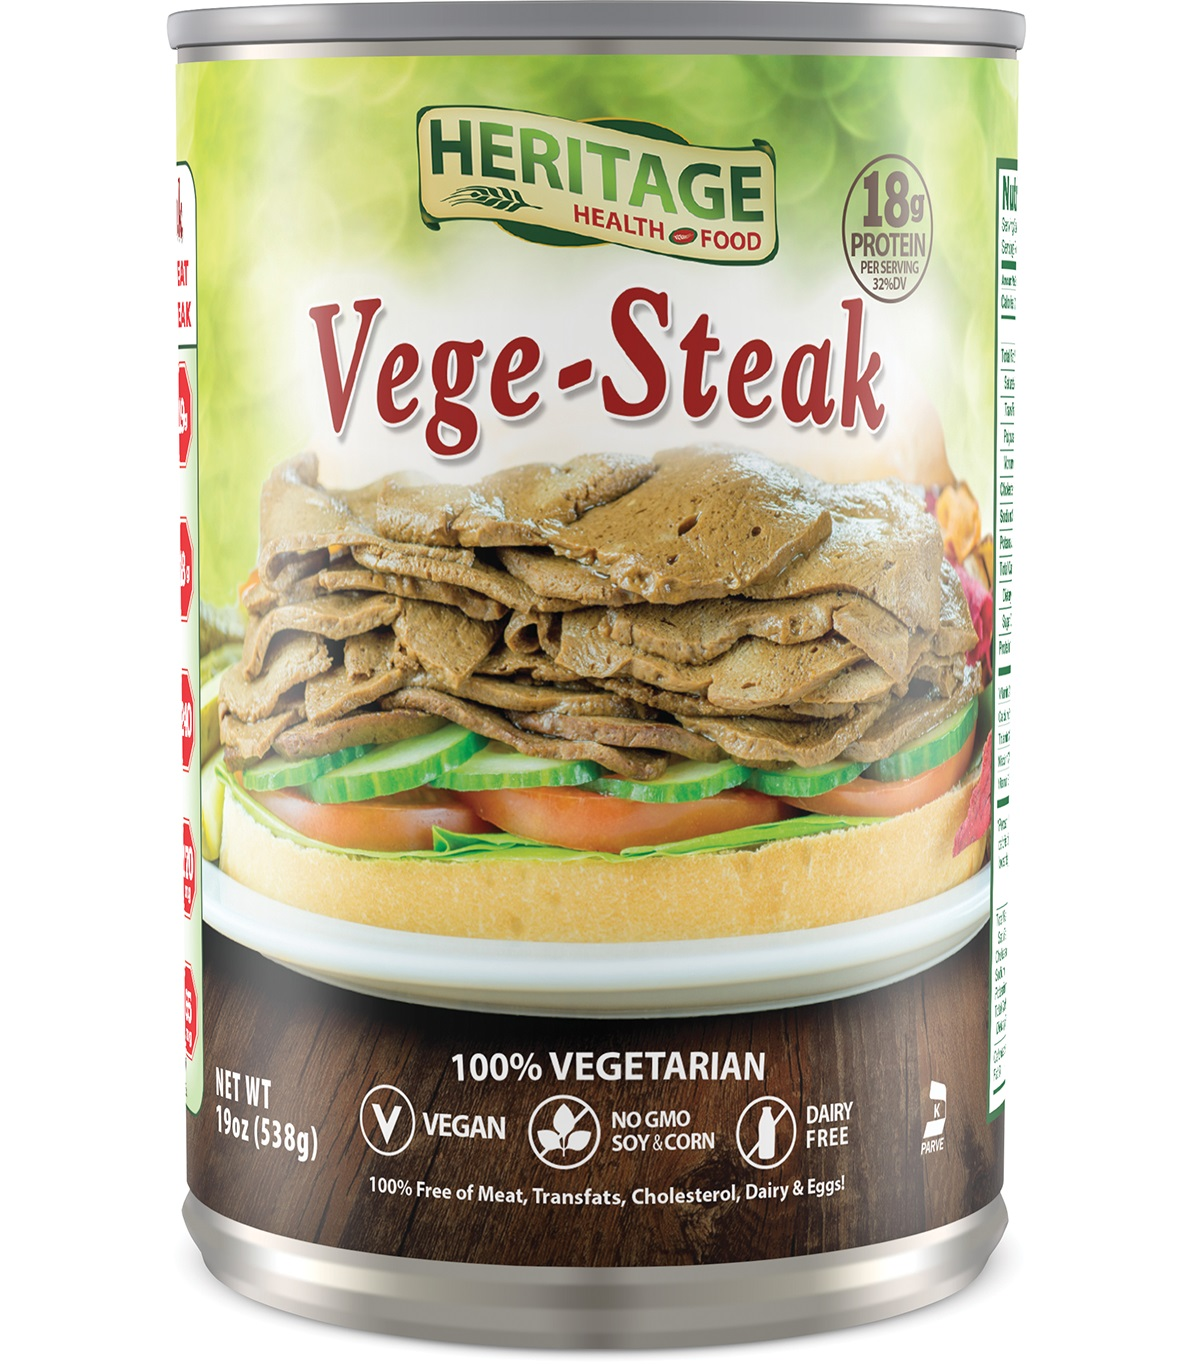 VEGE STEAKS-HERITAGE 6 PACK,HERITAGE HEALTH FOOD,853205002818